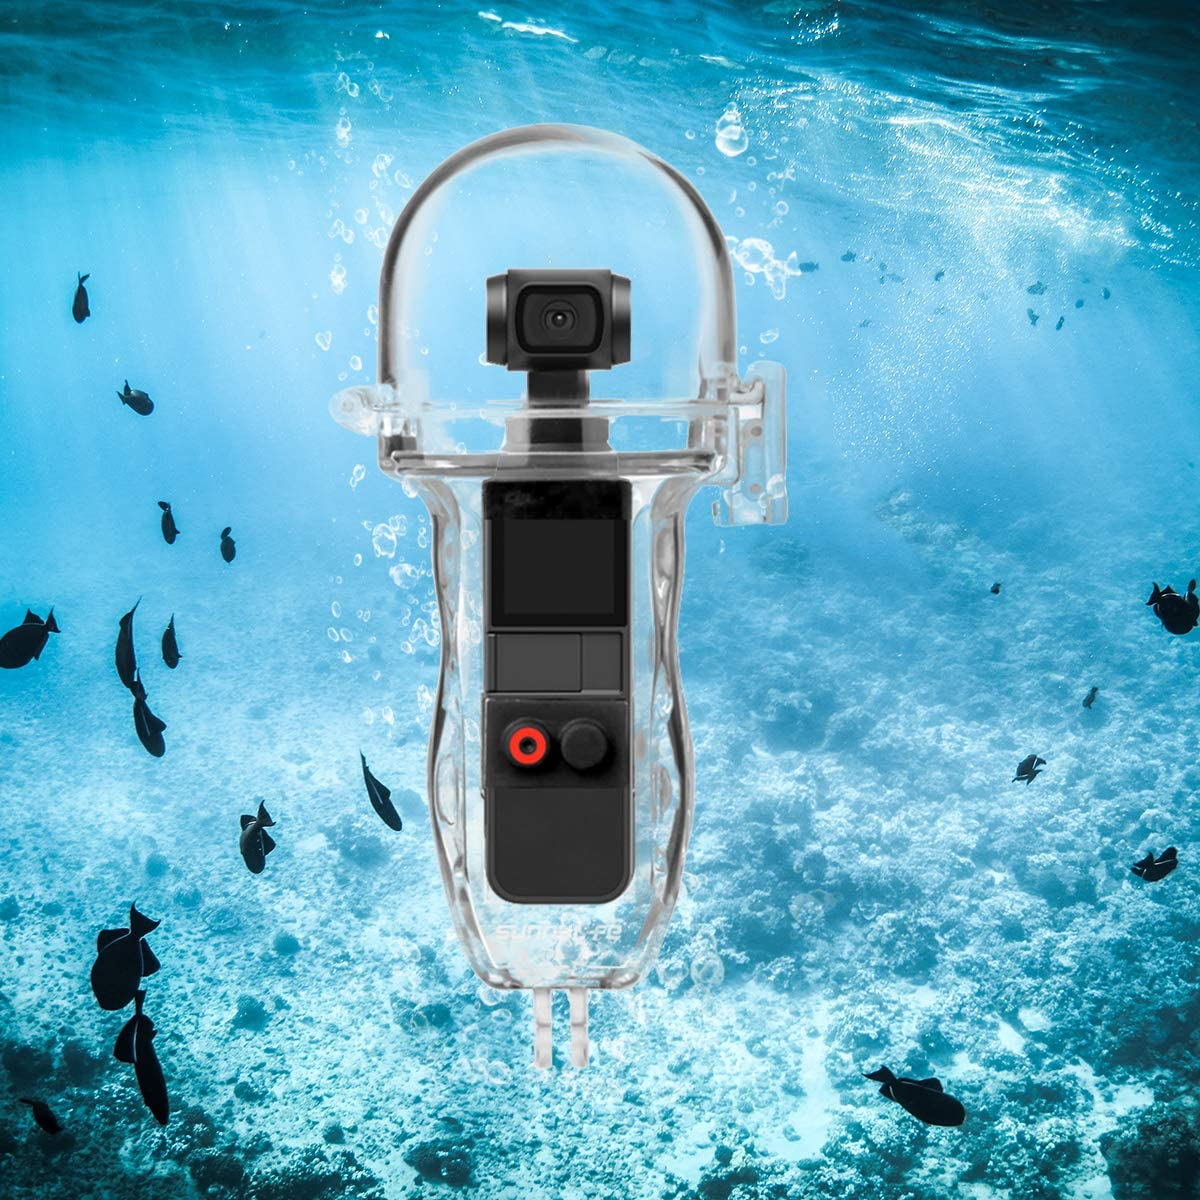 O'woda Upgraded Diving Waterproof Case Protective Housing Cover with Control Button for DJI OSMO Pocket Accessories